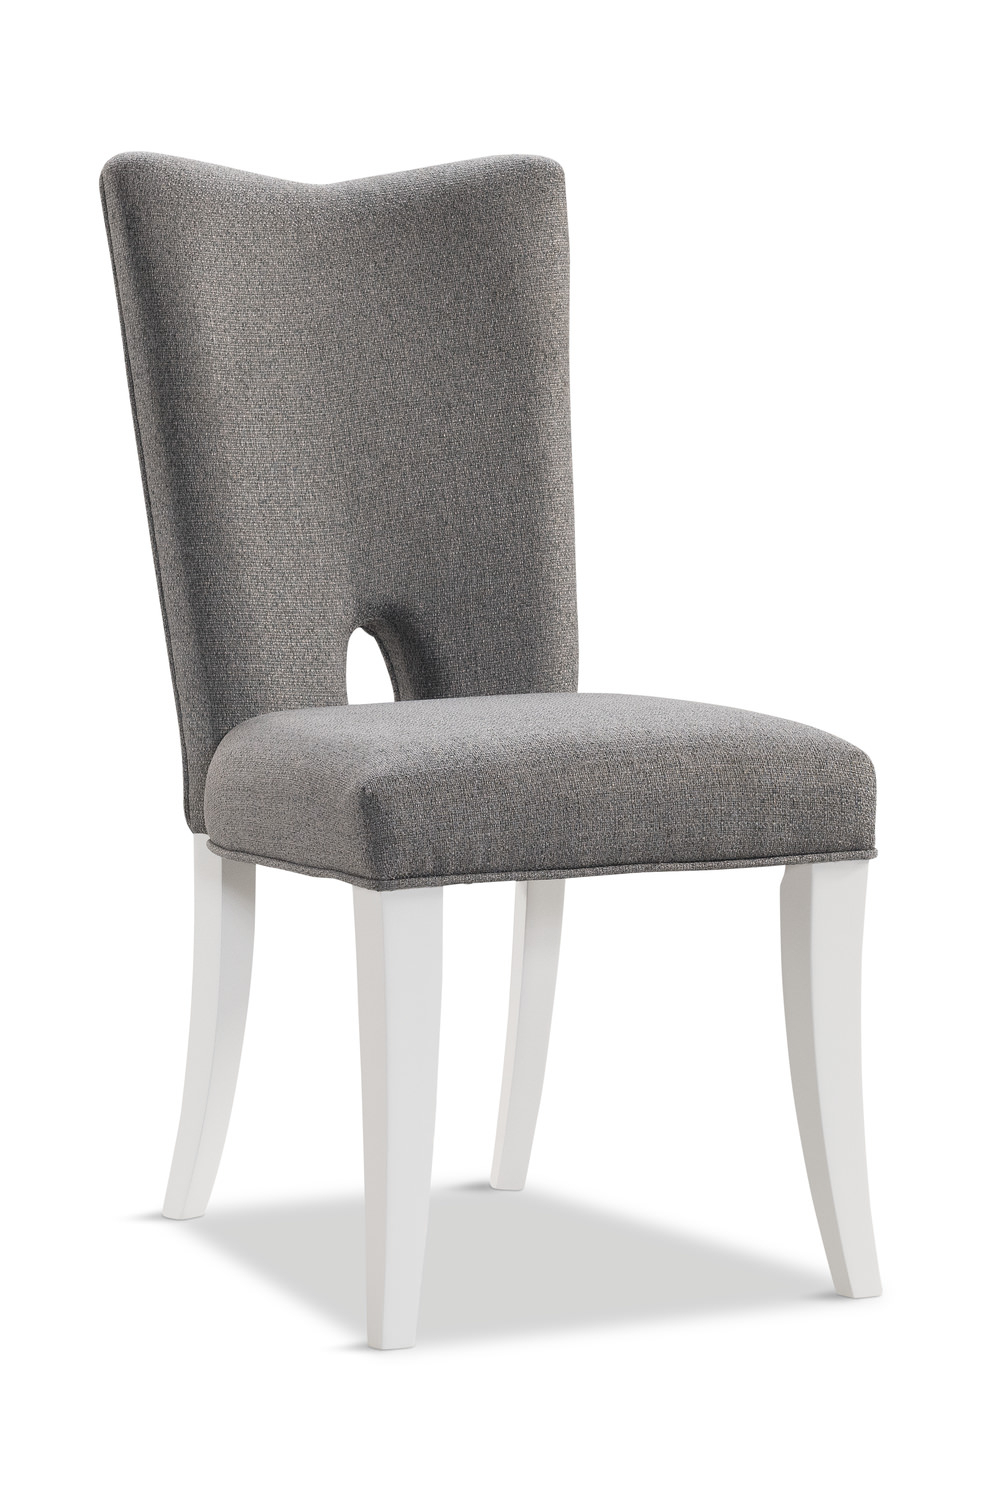 Lavo Upholstered Dining Chair In 2017 Partin 3 Piece Dining Sets (Image 15 of 20)